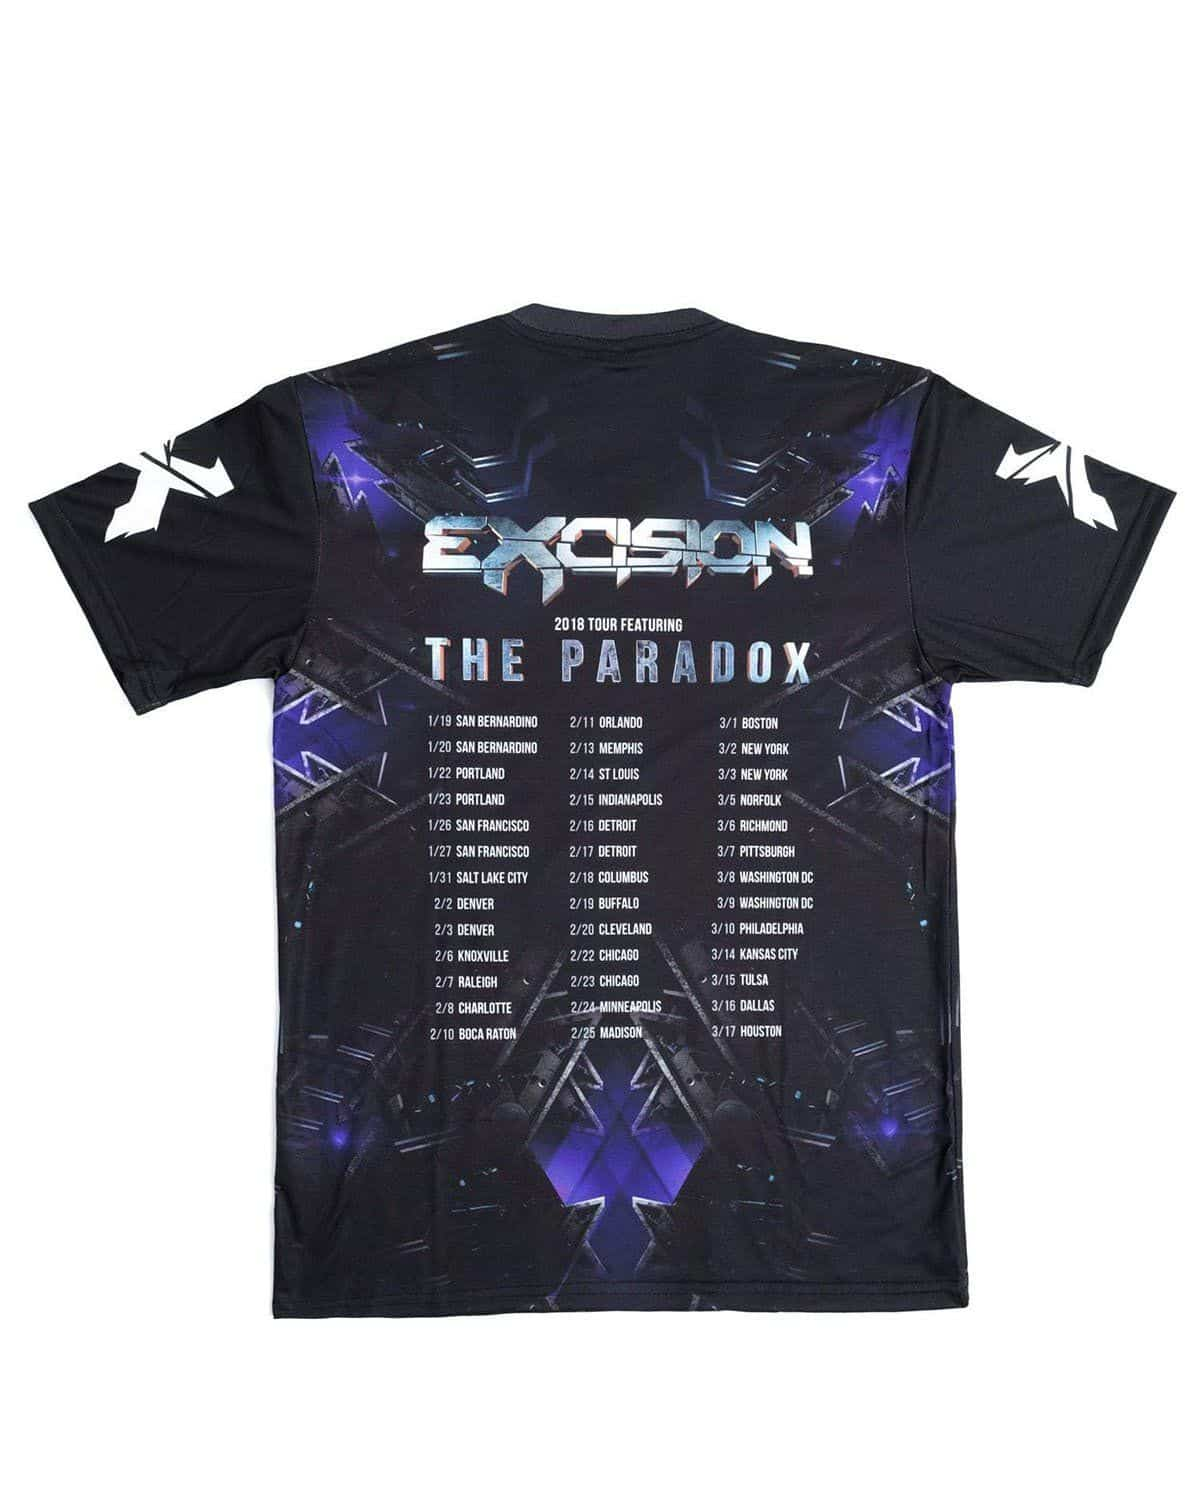 Excision 'The Paradox 2018' Dye Sub Tour T-Shirt - Black/Purple